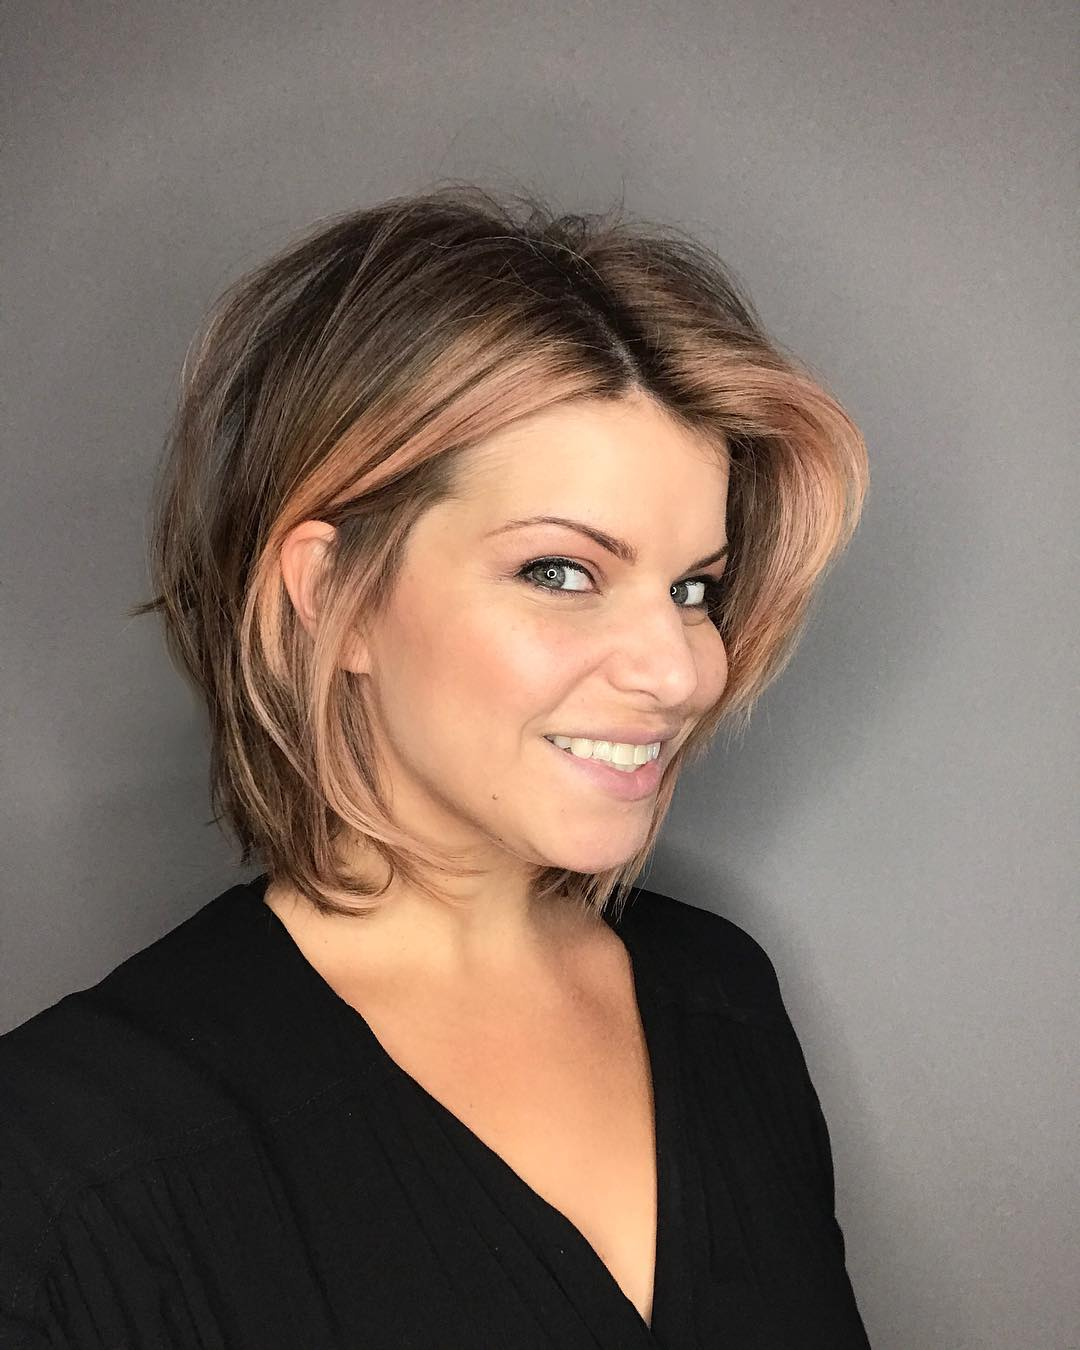 Chic Dark Blonde Layered Bob with Undone Blowout Texture and Rose Gold Balayage Highlights Medium Length Hairstyle